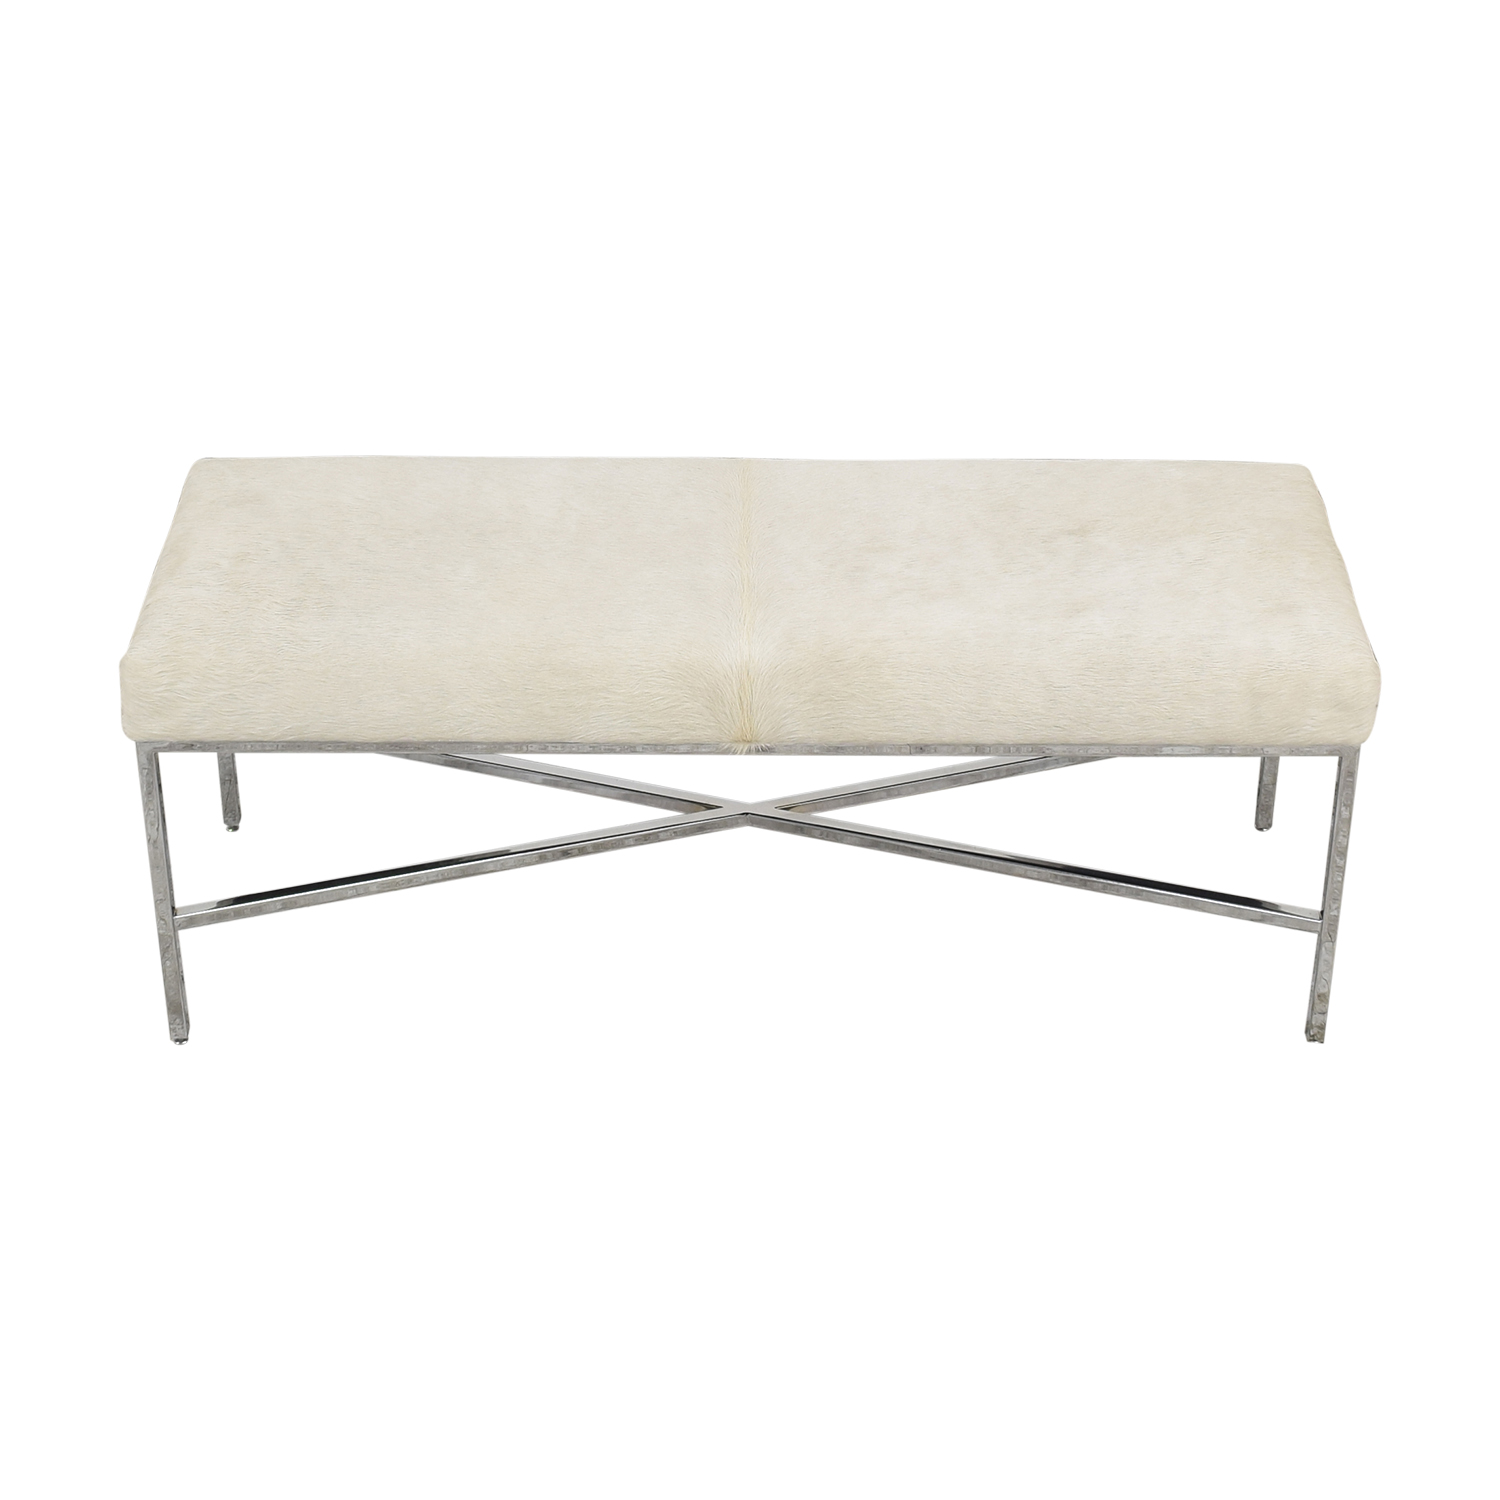 shop Outpost Original Outpost Original Metal Bench with Cowhide online